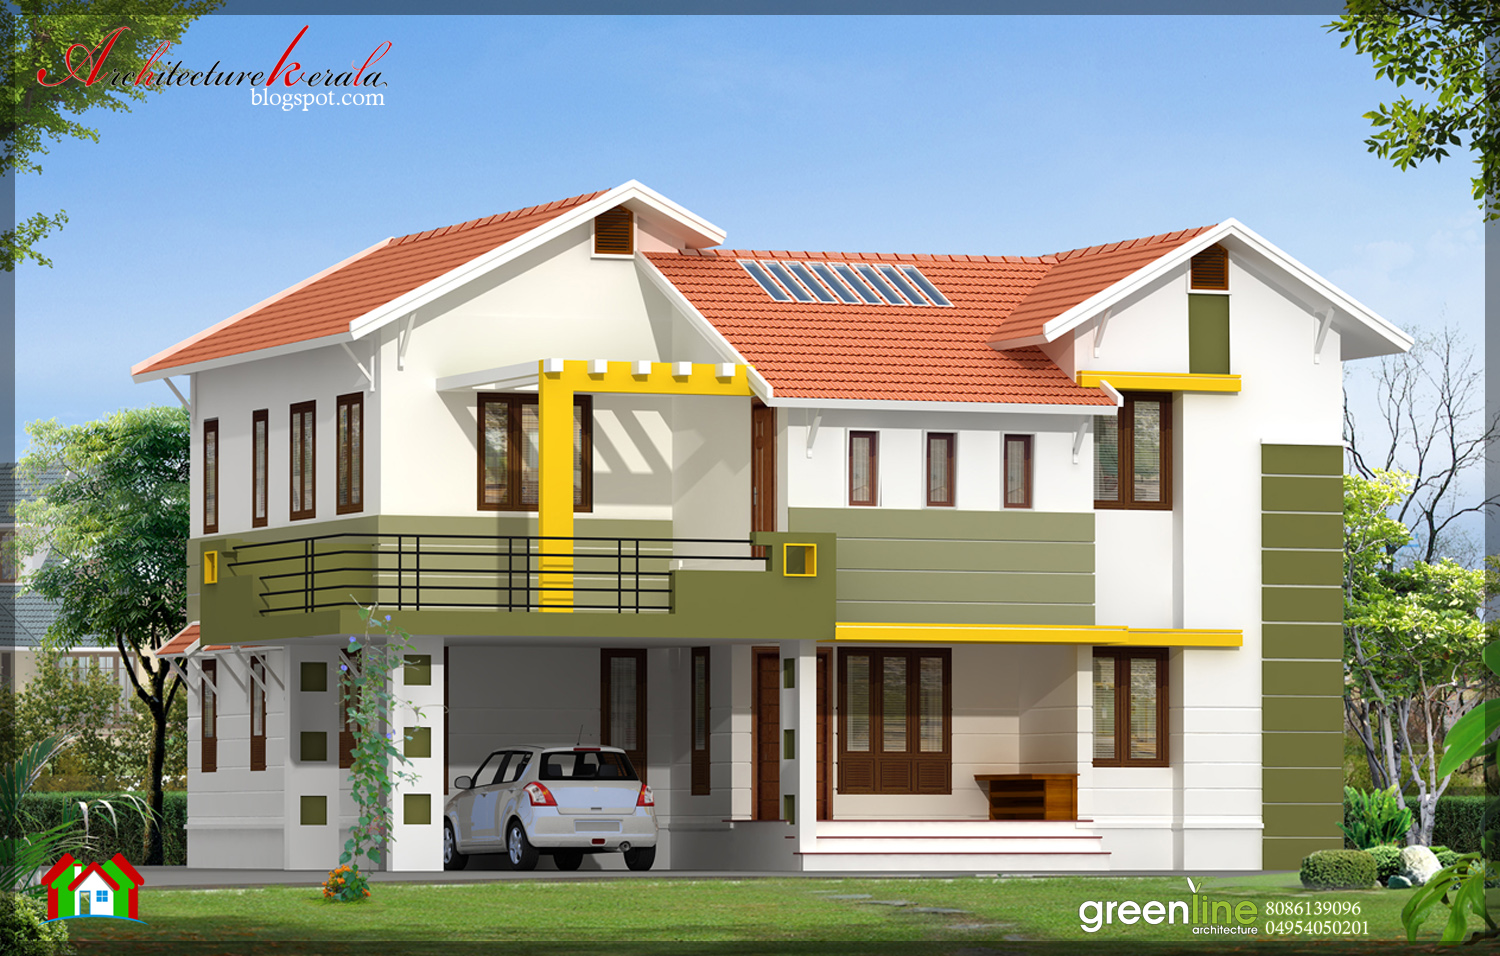 Architecture kerala 4 bhk contemporary style indian home Indian home design